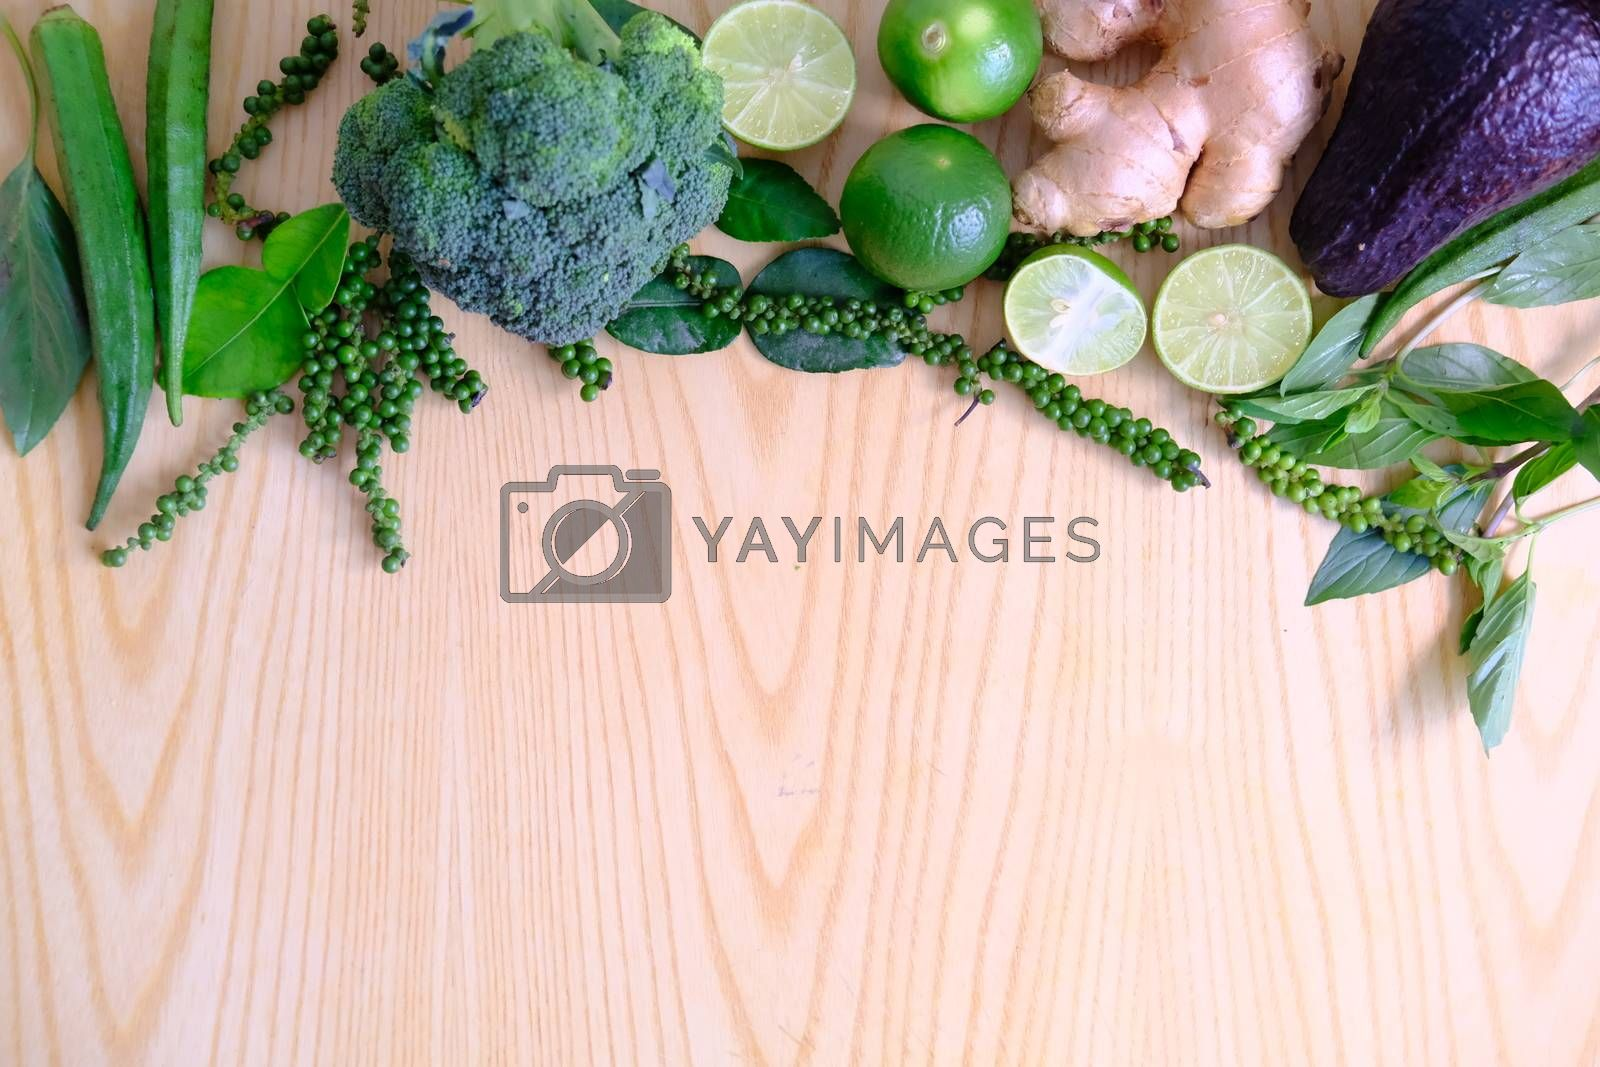 Fresh ripe green vegetables broccoli, ginger, lime, avocado, green pepper, Green okra and basil leaves on wooden background.  Organic vegetarian food ingredients vegetables  close up.